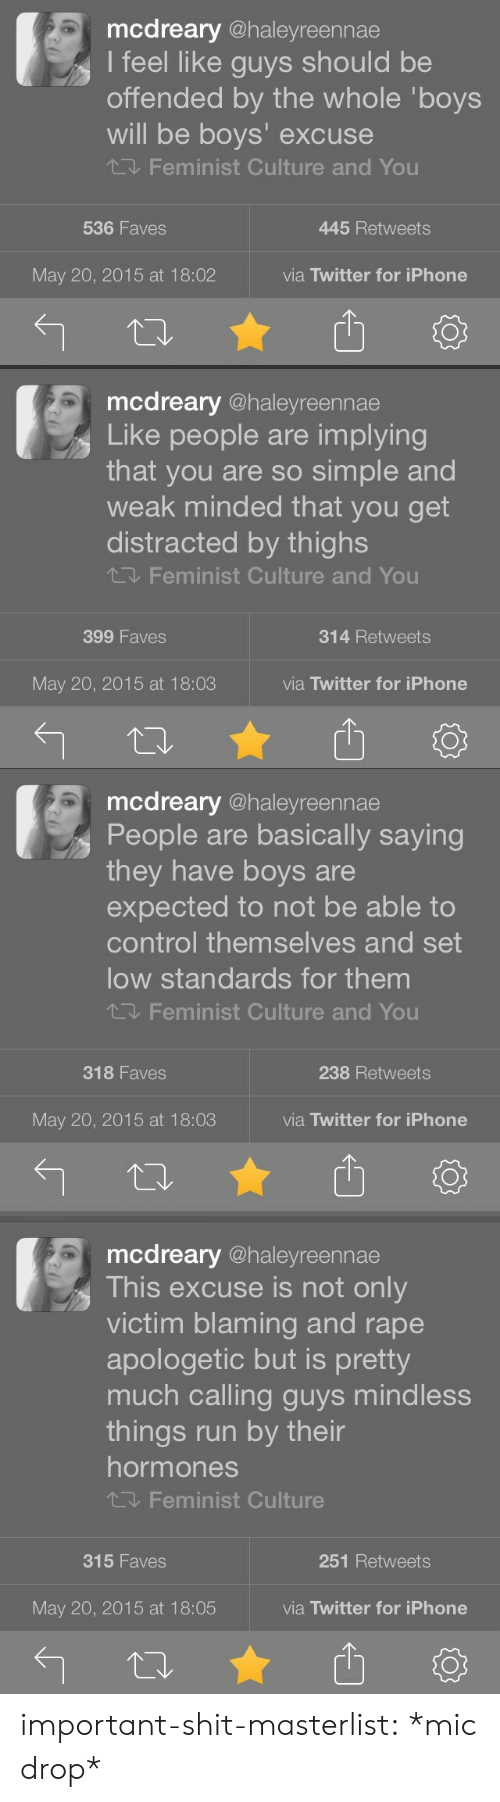 apologetic: mcdreary @haleyreennae  I feel like guys should be  offended by the whole 'boys  will be boys' excuse  Feminist Culture and You  536 Faves  445 Retweets  May 20, 2015 at 18:02  via Twitter for iPhone   mcdreary @haleyreennae  Like people are implying  that you are so simple and  weak minded that you get  distracted by thighs  Feminist Culture and You  399 Faves  314 Retweets  May 20, 2015 at 18:03  via Twitter for iPhone  13   mcdreary @haleyreennae  People are basically saying  they have boys are  expected to not be able to  control themselves and set  low standards for them  Feminist Culture and You  318 Faves  238 Retweets  May 20, 2015 at 18:03  via Twitter for iPhone   mcdreary @haleyreennae  This excuse is not only  victim blaming and rape  apologetic but is pretty  much calling guys mindless  things run by their  hormones  飞, Feminist Culture  315 Faves  251 Retweets  May 20, 2015 at 18:05  via Twitter for iPhone important-shit-masterlist: *mic drop*